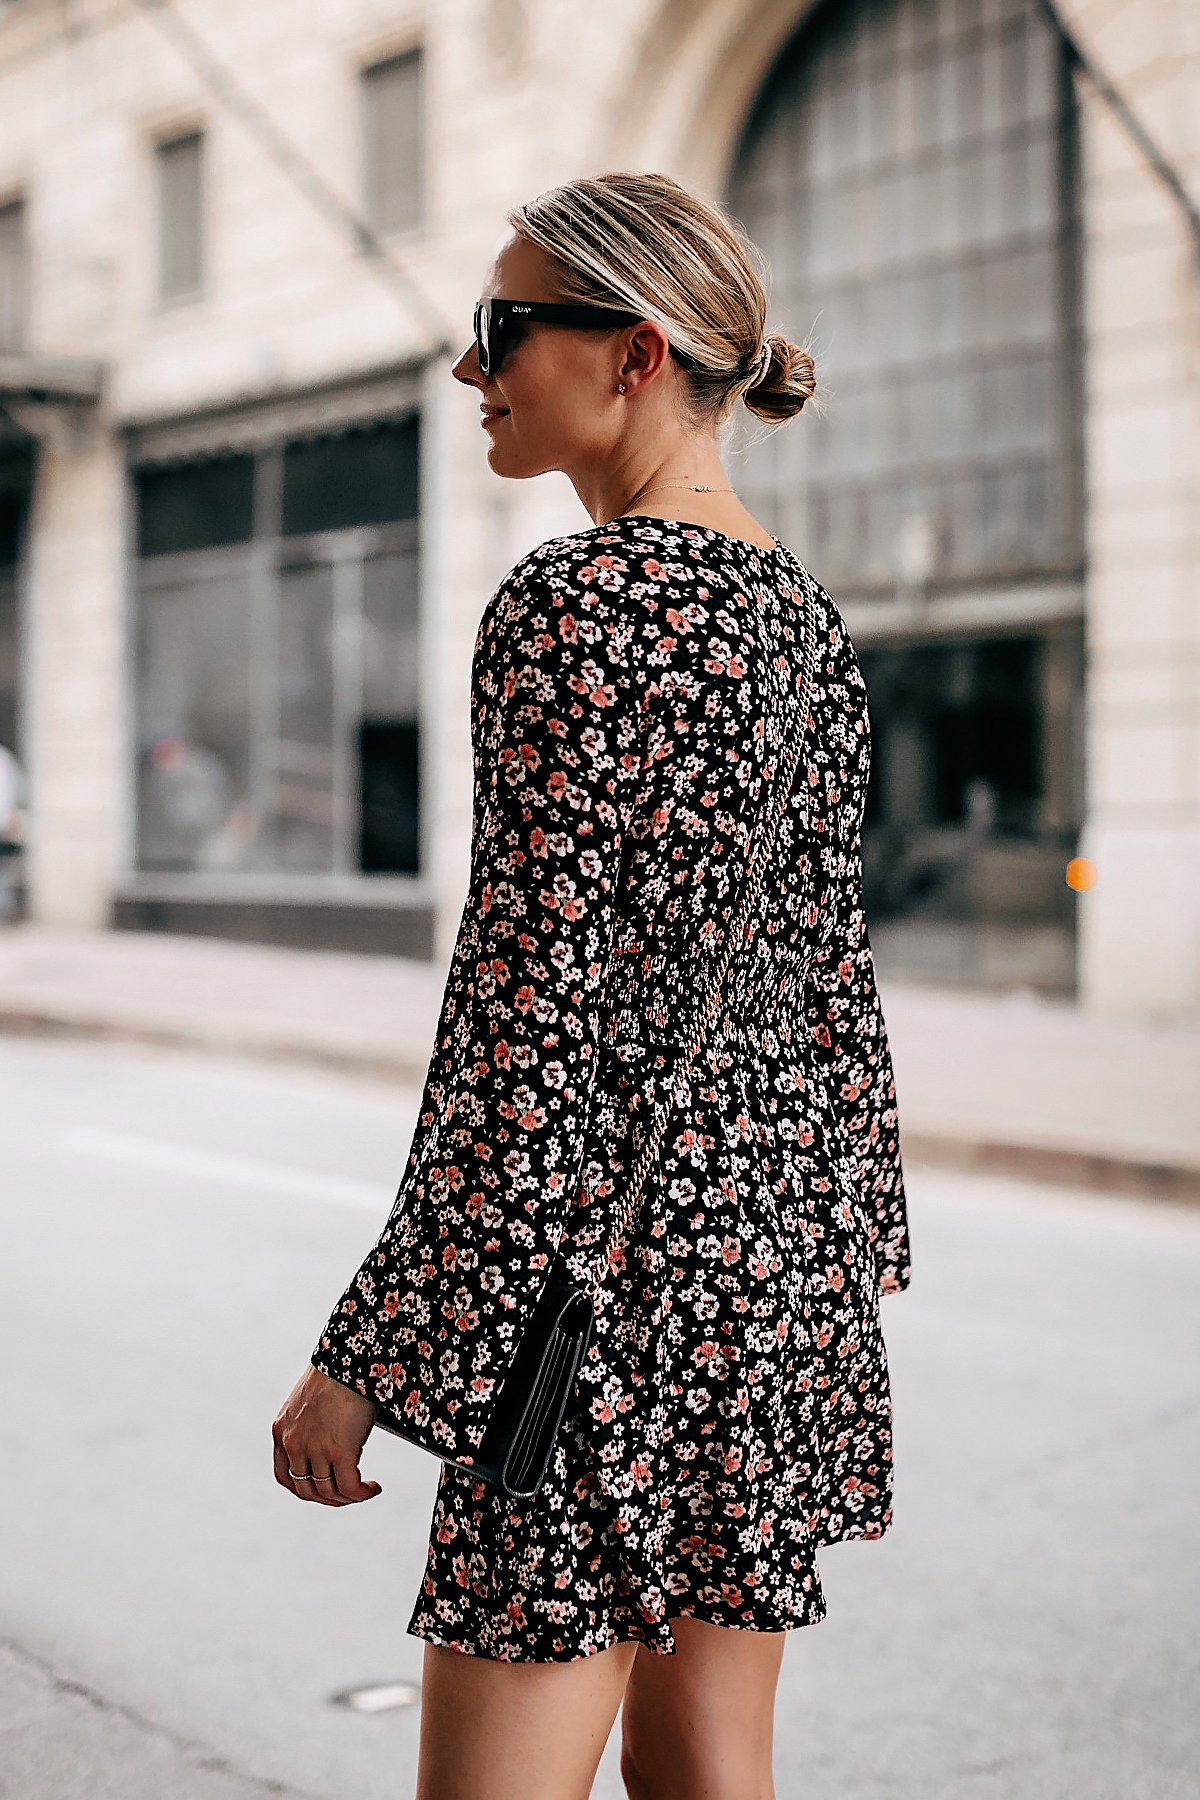 Blonde Woman Wearing Black Floral Long Sleeve Mini Dress Fashion Jackson San Diego Fashion Blogger Street Style